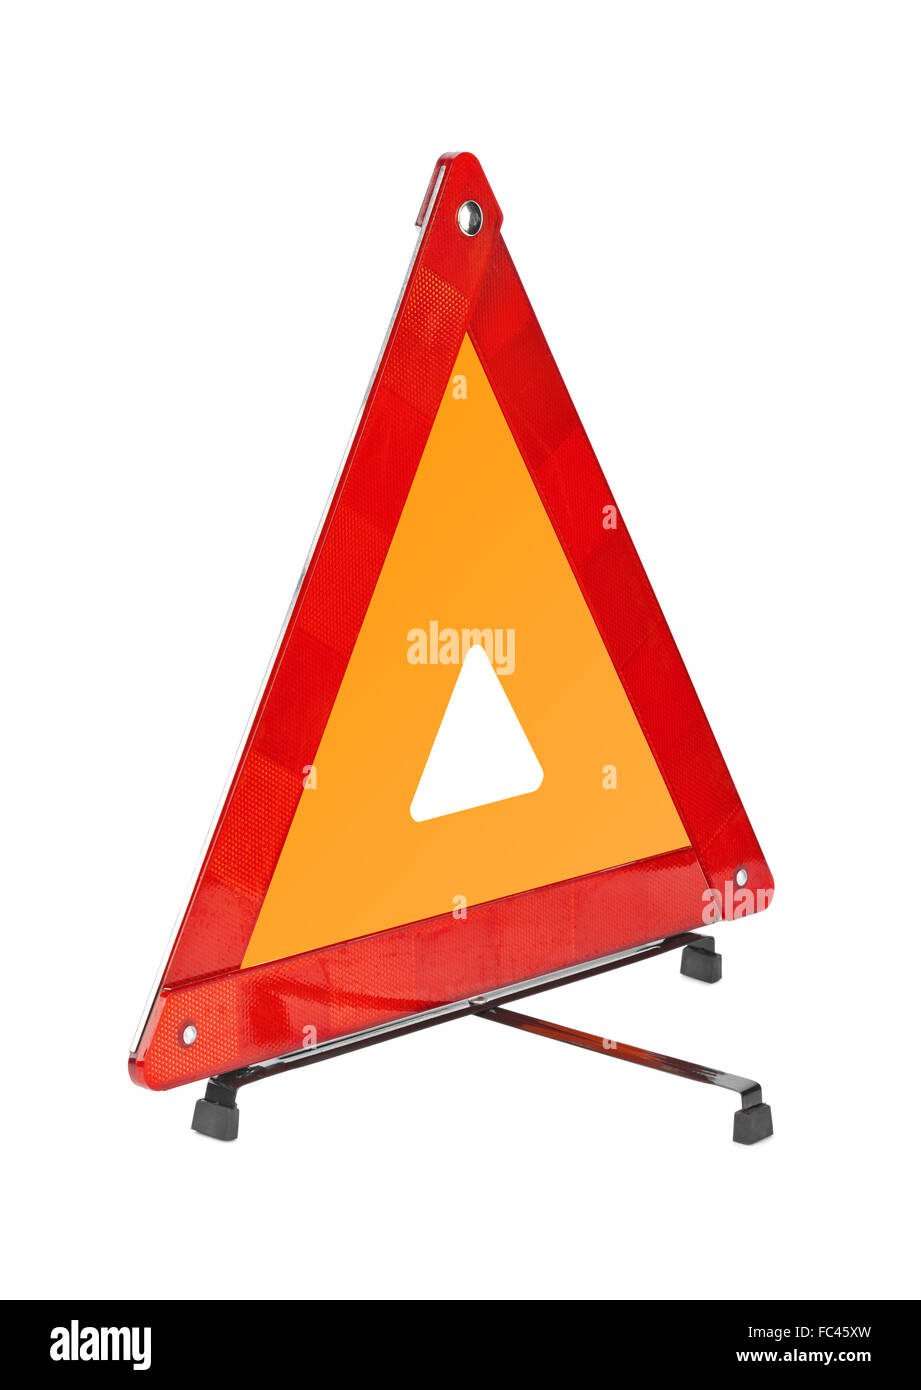 Warning car sign - red triangle - Stock Image